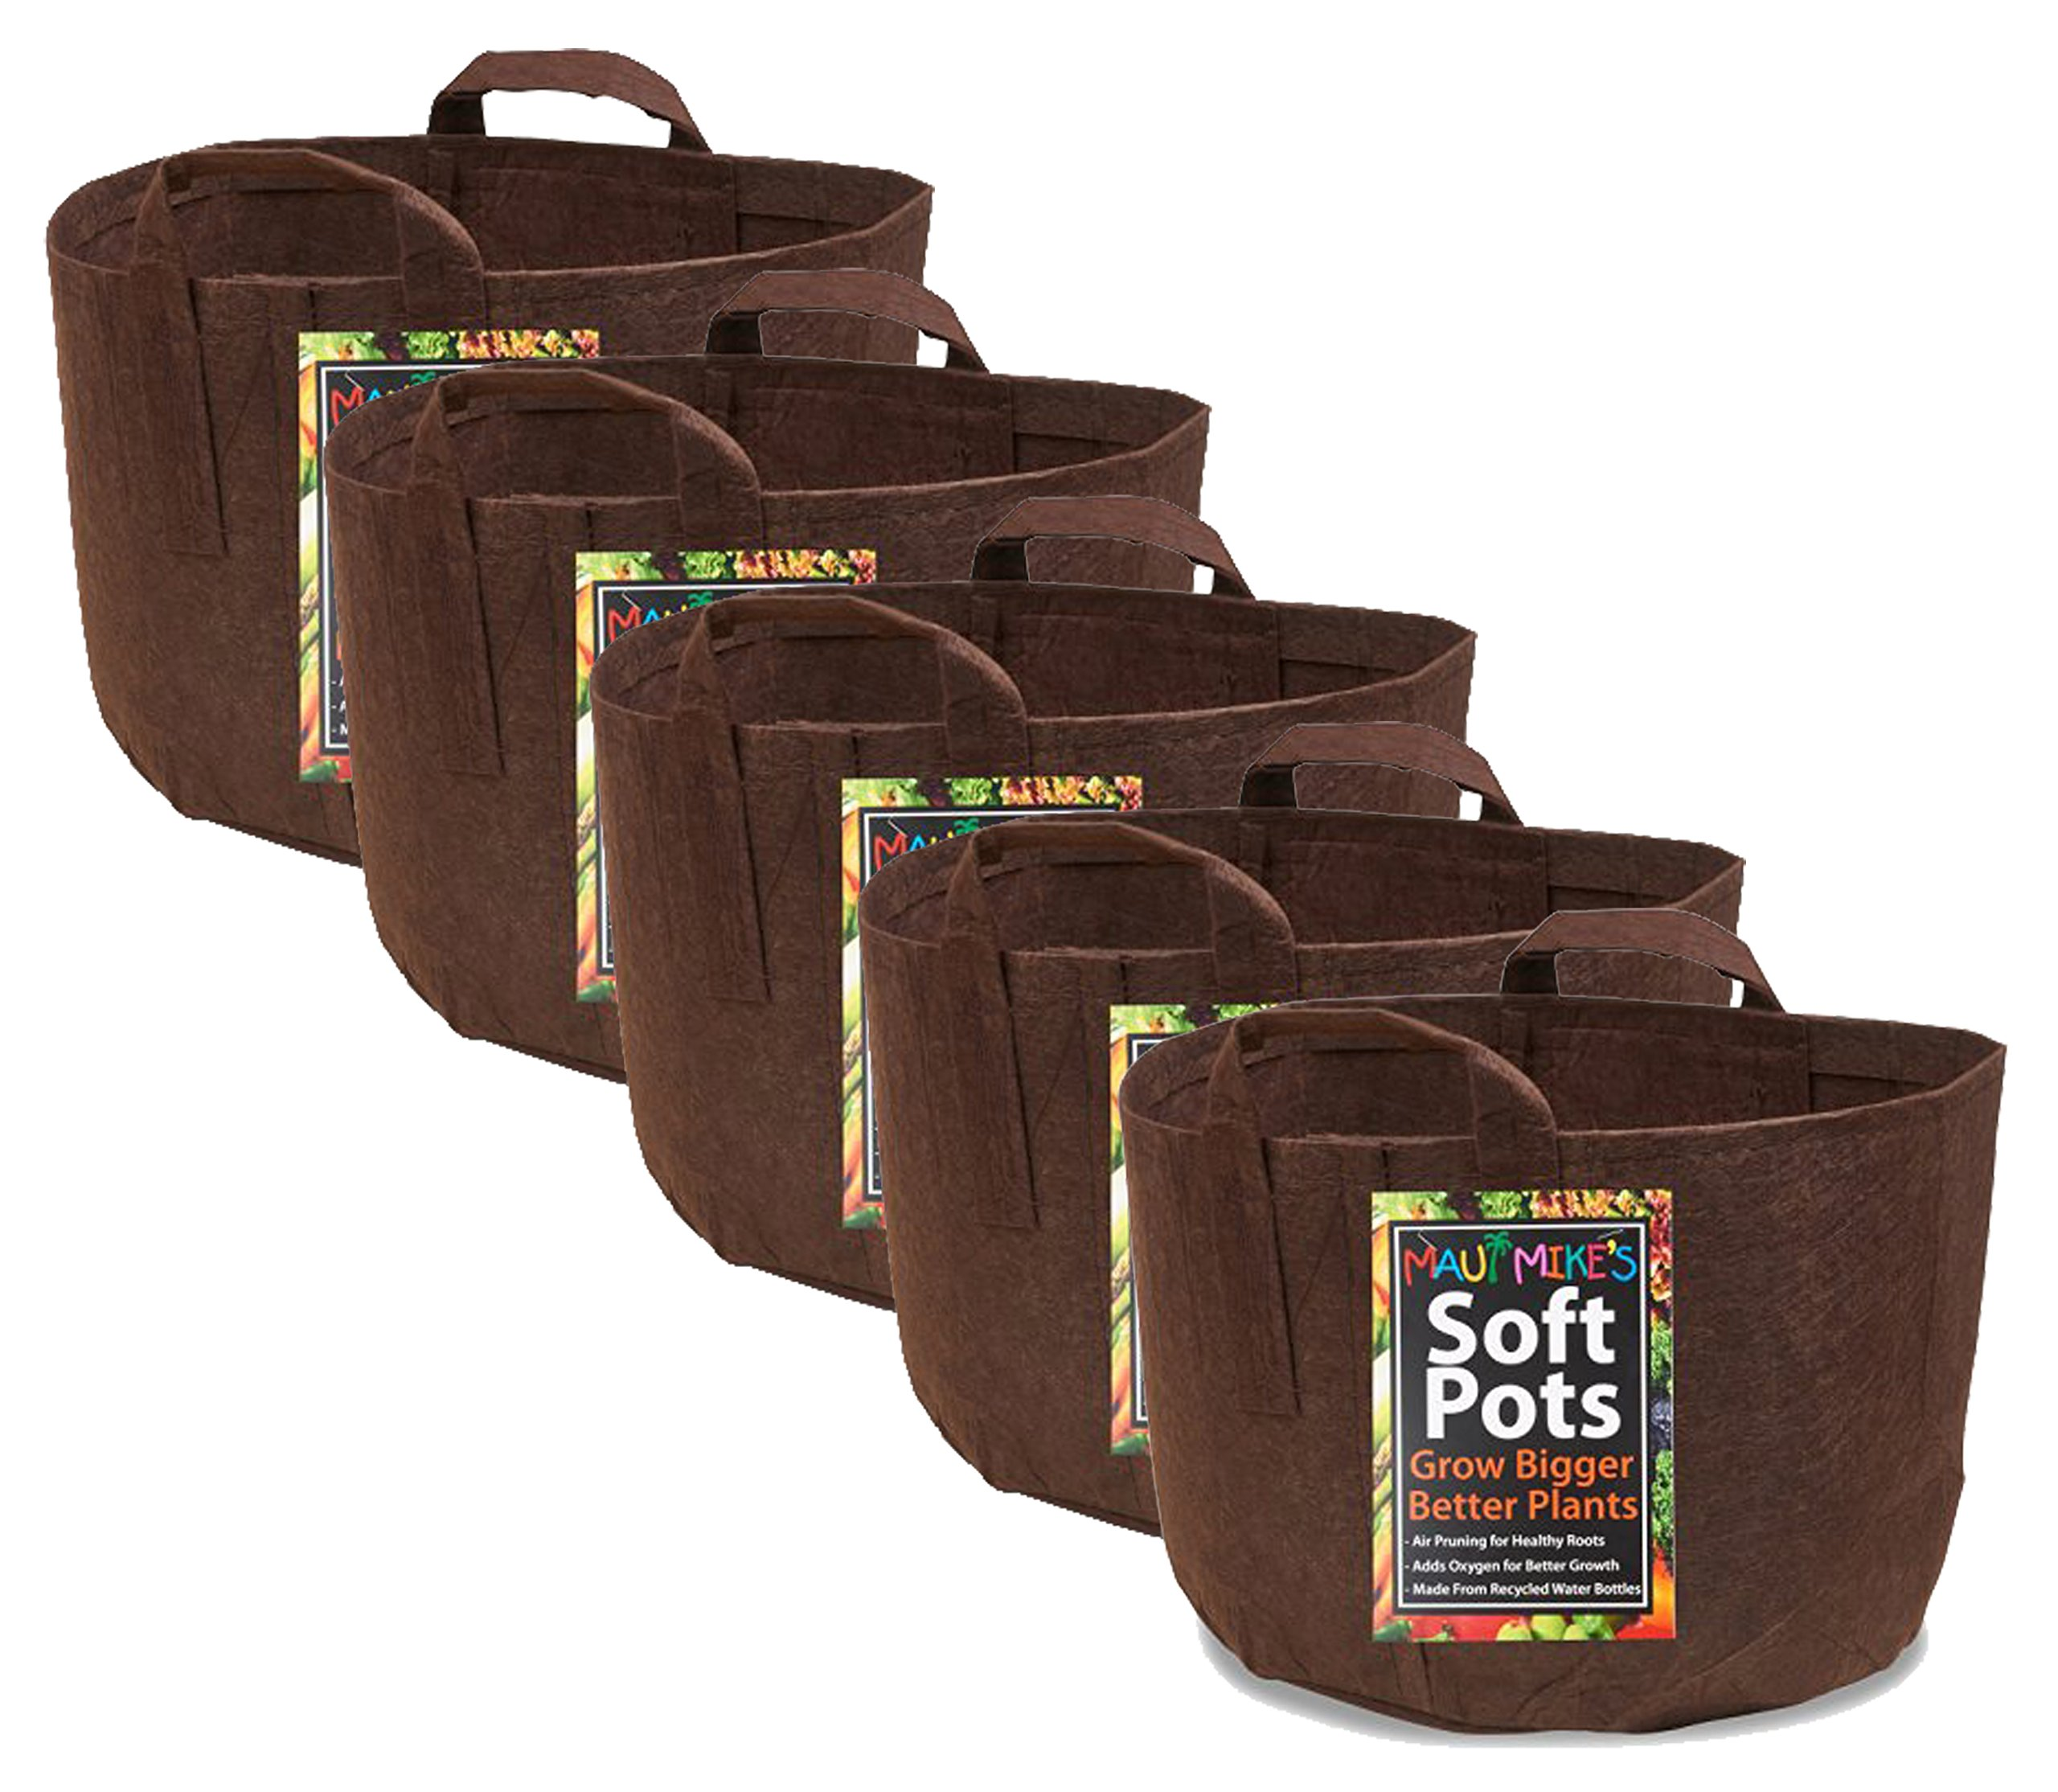 SOFT POTS (3 gallon) (5 PACK) Best Aeration Fabric Garden Pots from Maui Mike's. Thicker Hemp material and recycled from plastic water bottles. Eco Friendly. by Maui Mike's Lip Balm